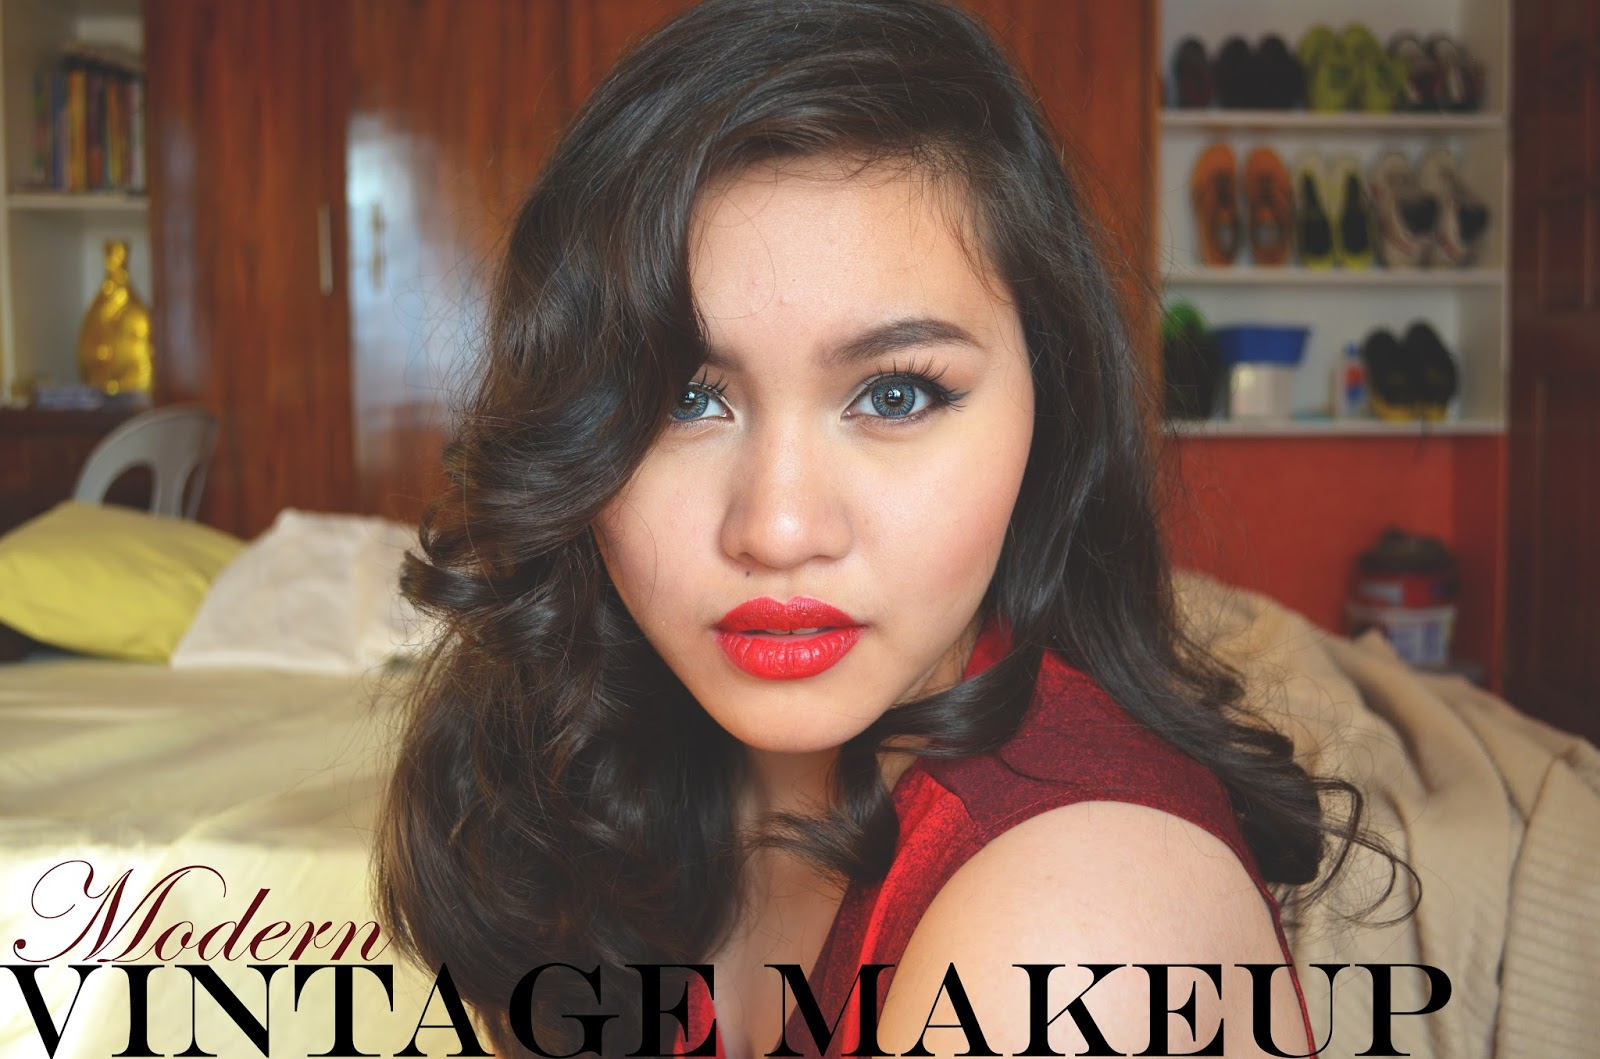 Beauty lifestyle omega this post will be an easy modern vintage retro makeup tutorial scroll down if you want to learn how to this makeup baditri Choice Image